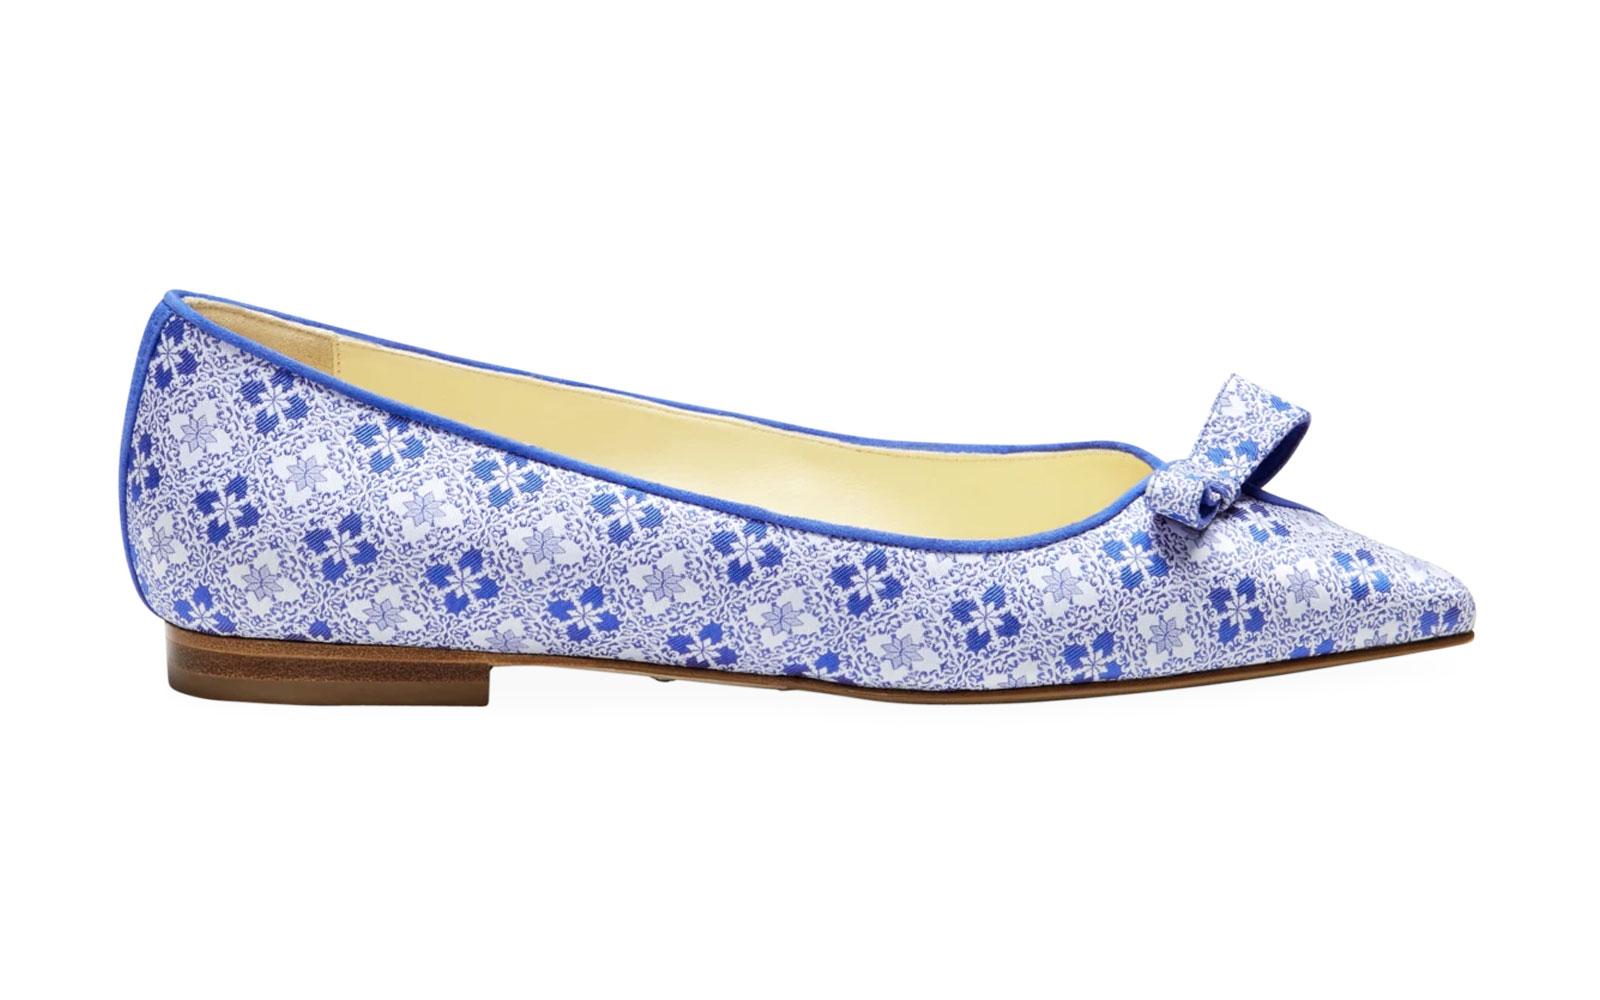 Blue and white patterned flats